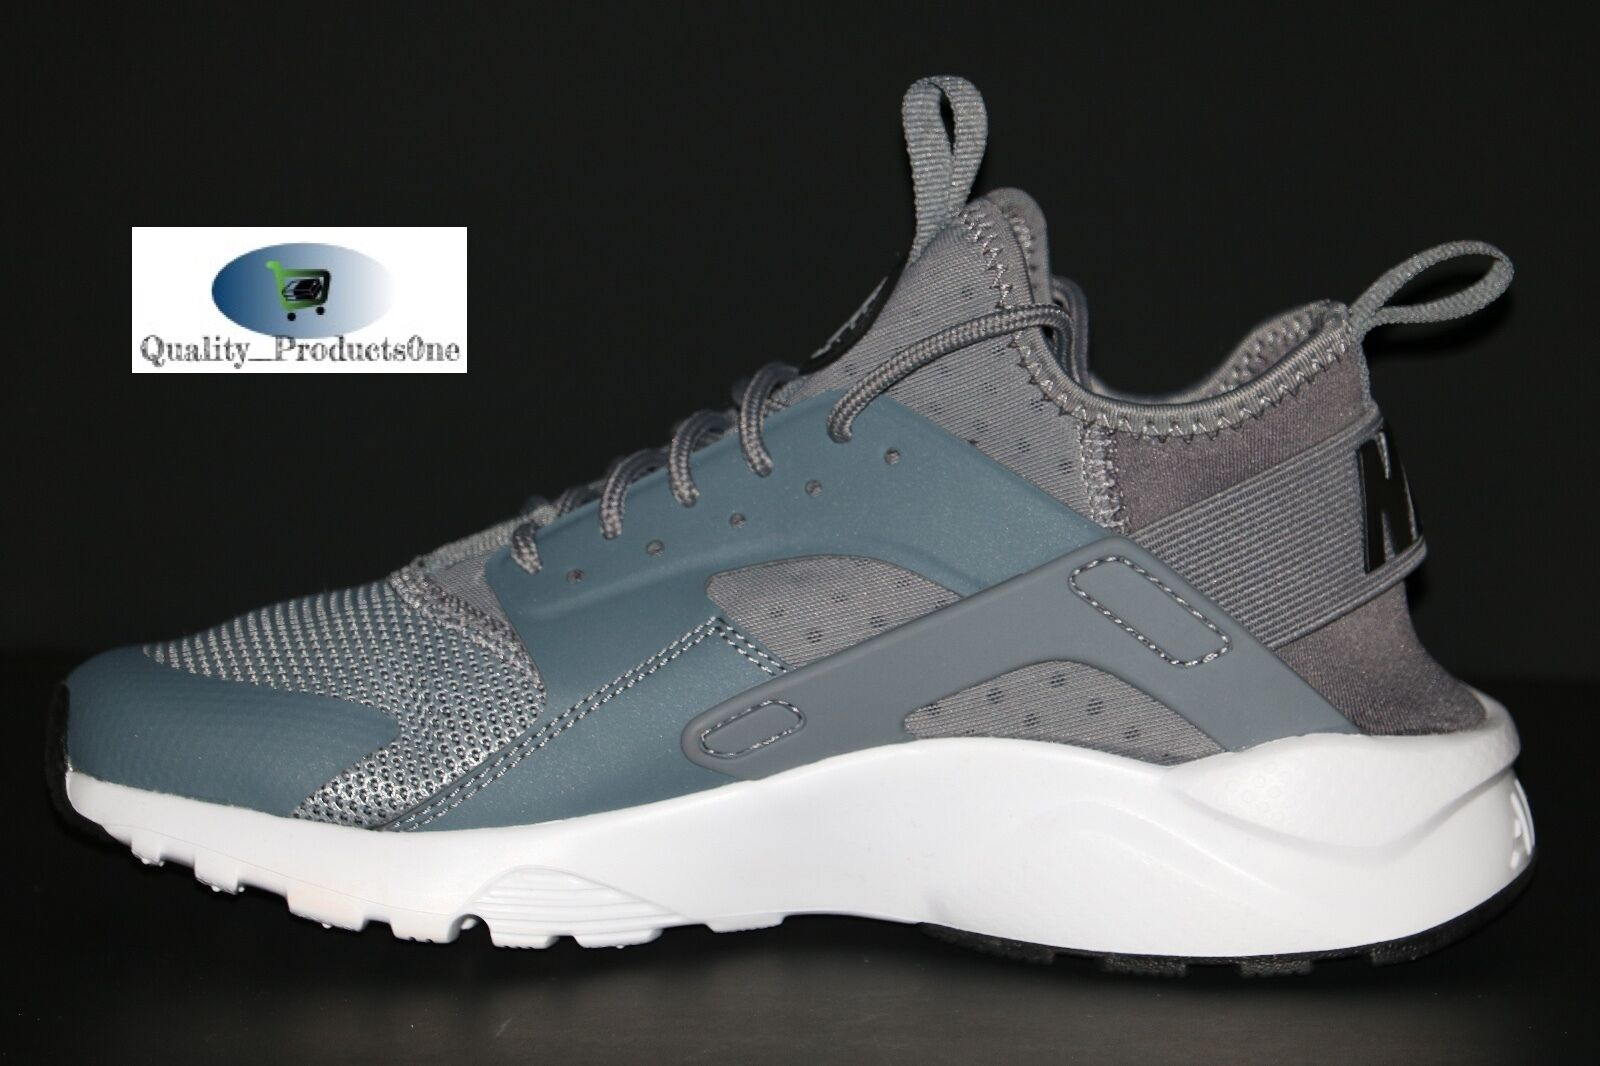 219d9d350a0b0c ... Nike Air Huarache Huarache Huarache Run Ultra Cool Grey White Black  819685 011 Size 6 782877 ...